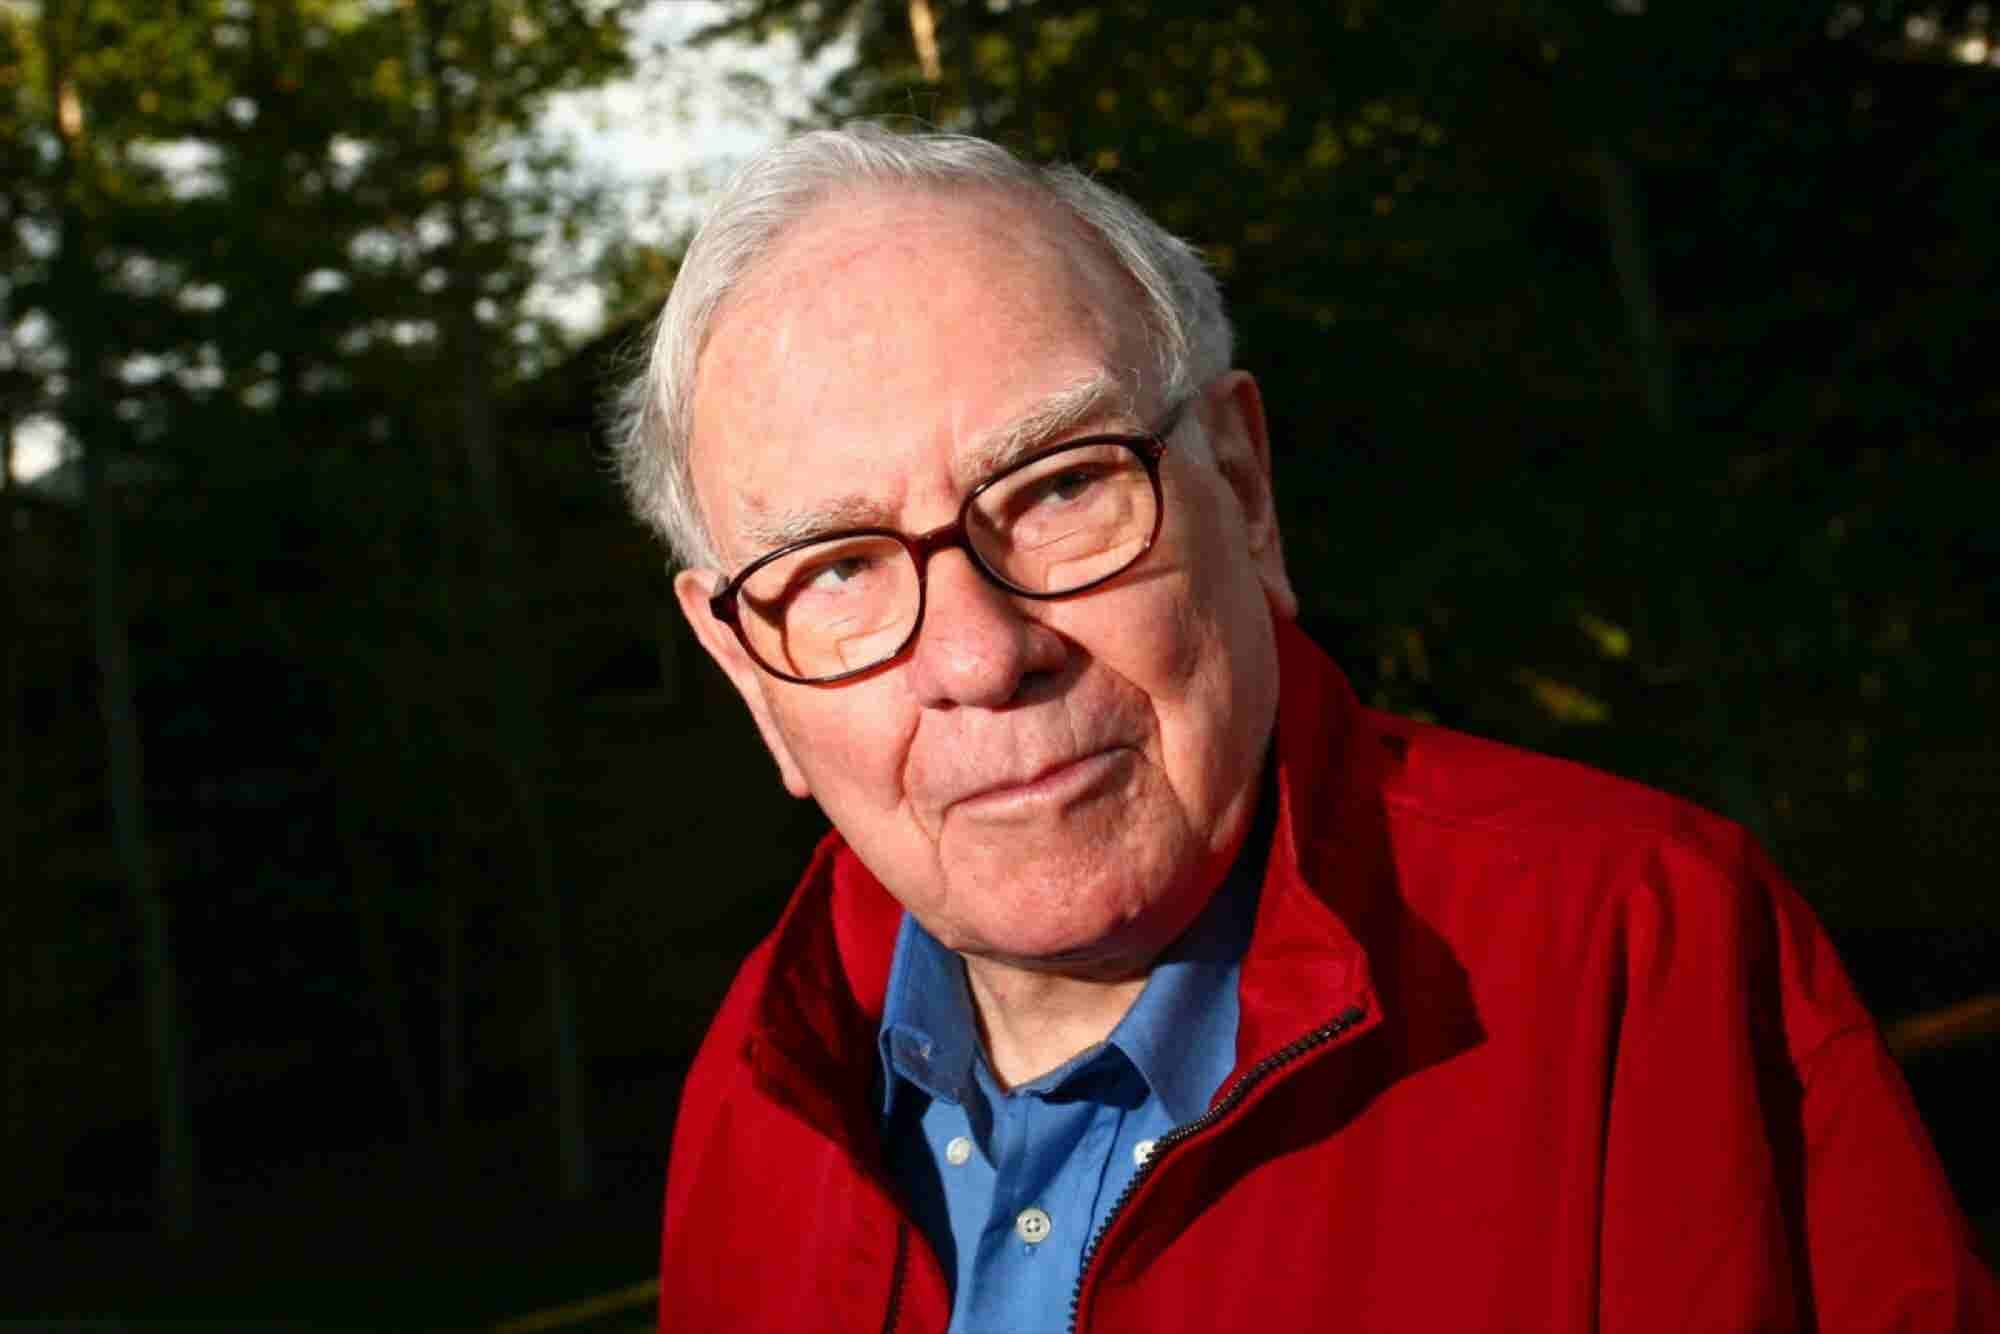 Warren Buffett: 5 Things You Can Learn From the Man Who Invested $1 Billion in Apple